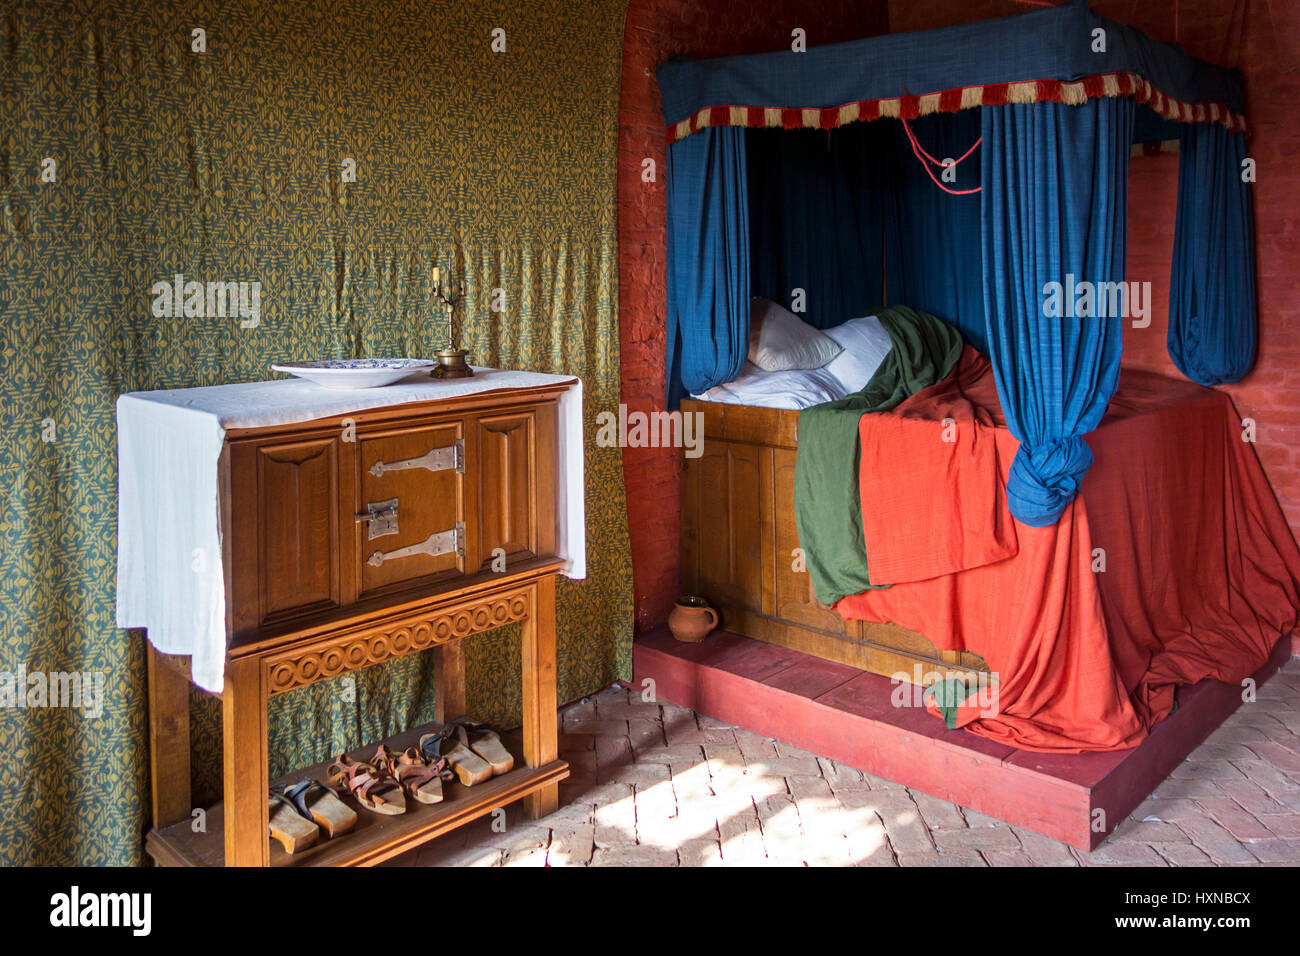 Colourful medieval curtained bedstead / bed from the Middle Ages with curtains - Stock Image